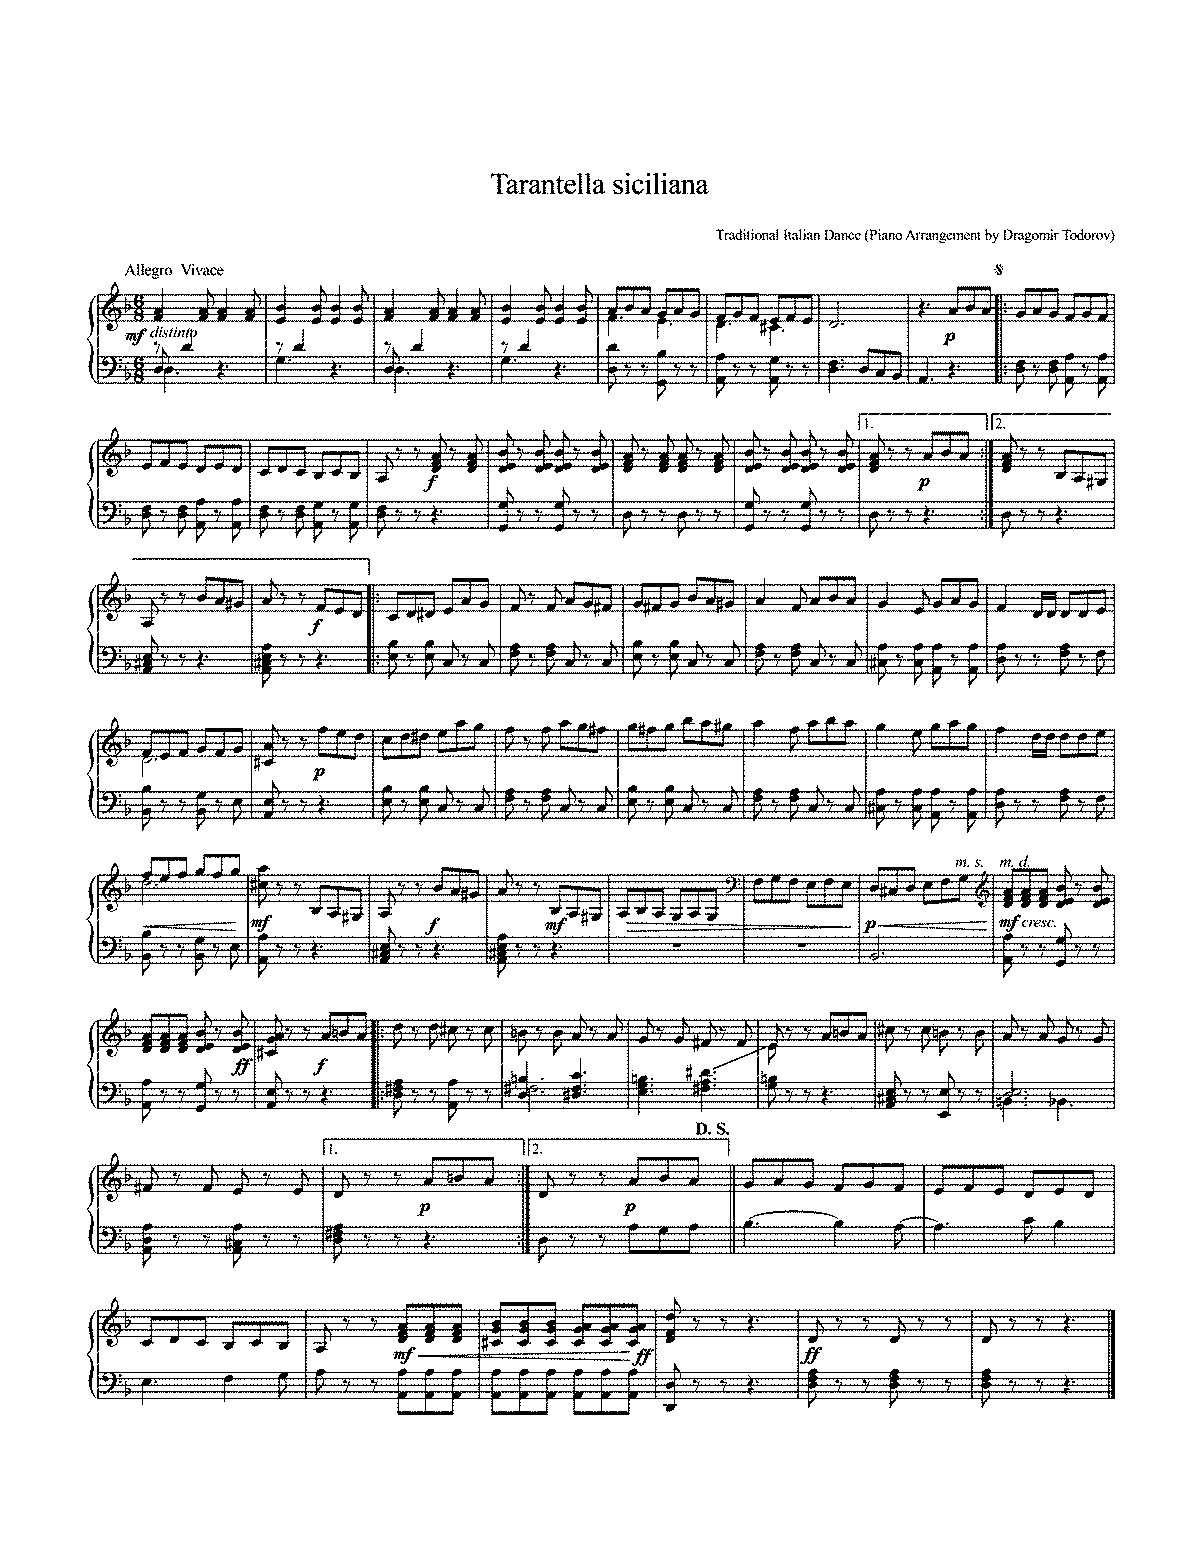 PMLP727978-Tarantella siciliana (Dragomir Todorov's Piano Arrangement of Traditional Italian Dance).pdf